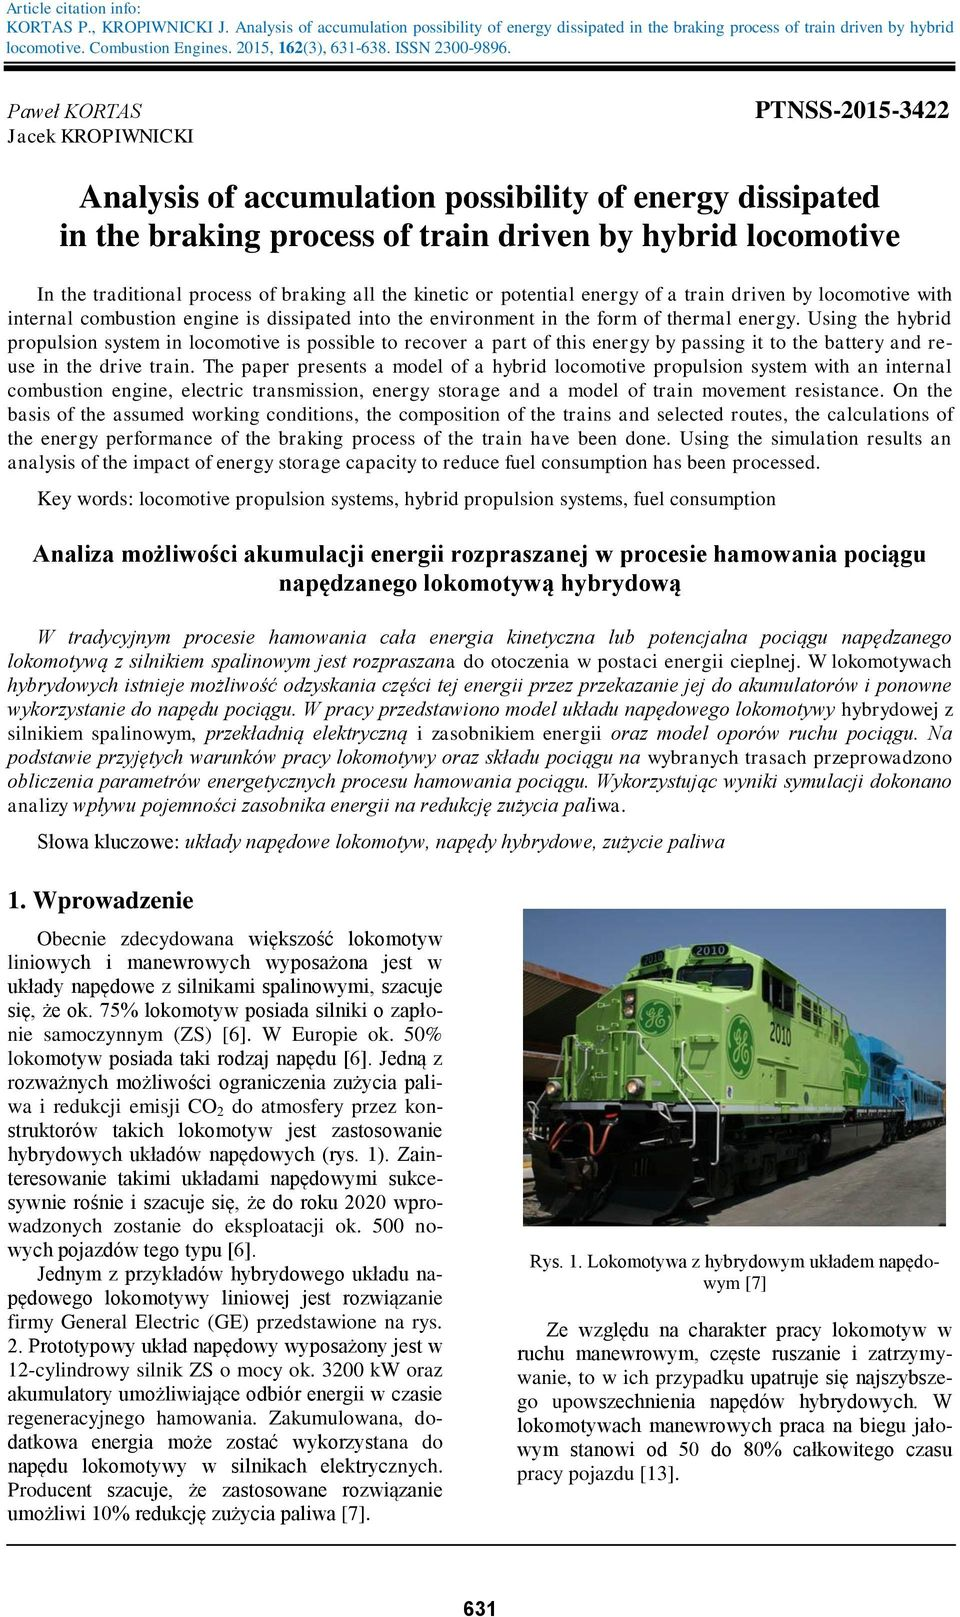 Paweł KORTAS Jacek KROPIWNICKI PTNSS-2015-3422 Analysis of accumulation possibility of energy dissipated in the braking process of train driven by hybrid locomotive In the traditional process of